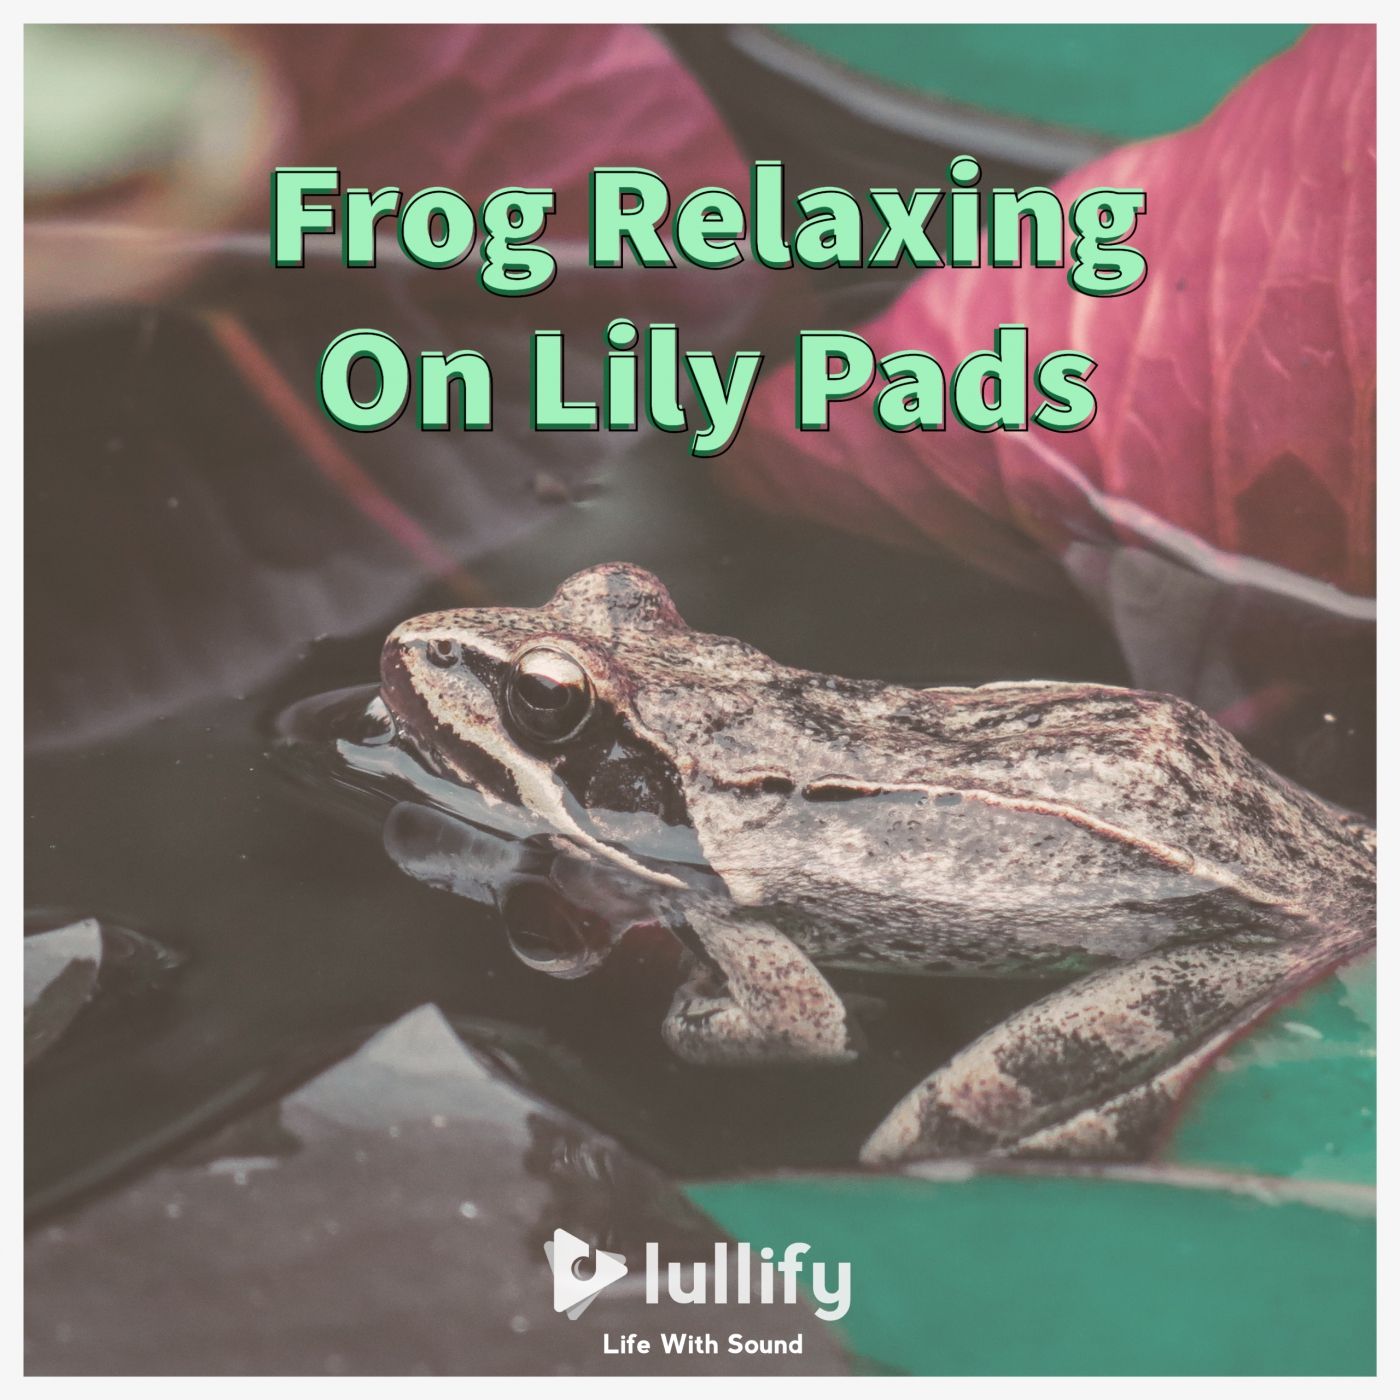 Frog Relaxing On Lily Pads